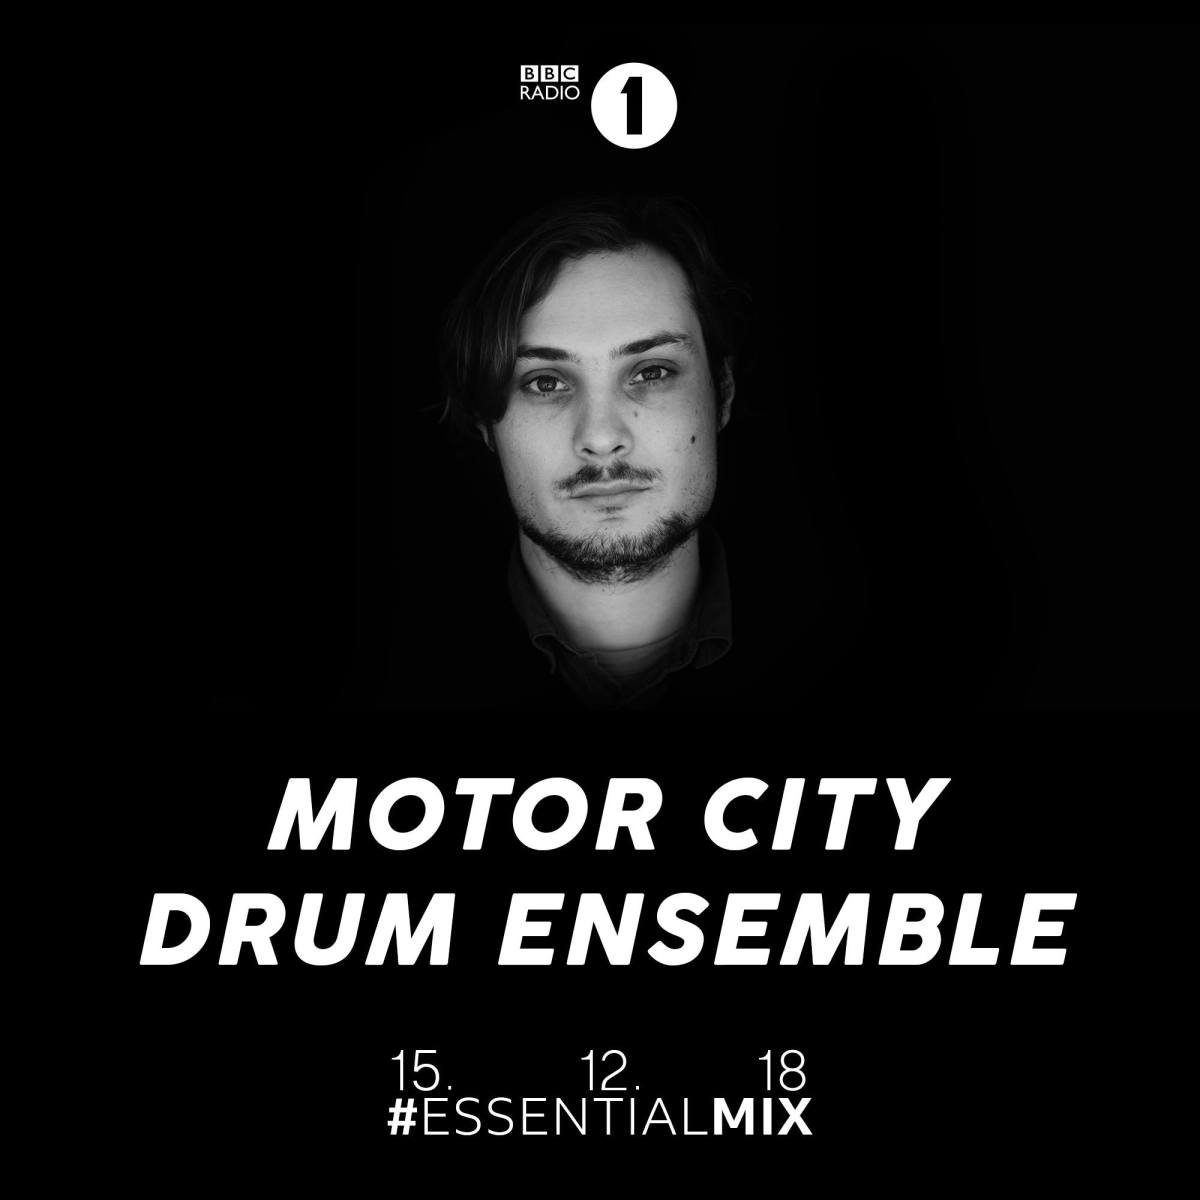 Motor City Drum Ensemble Essential Mix